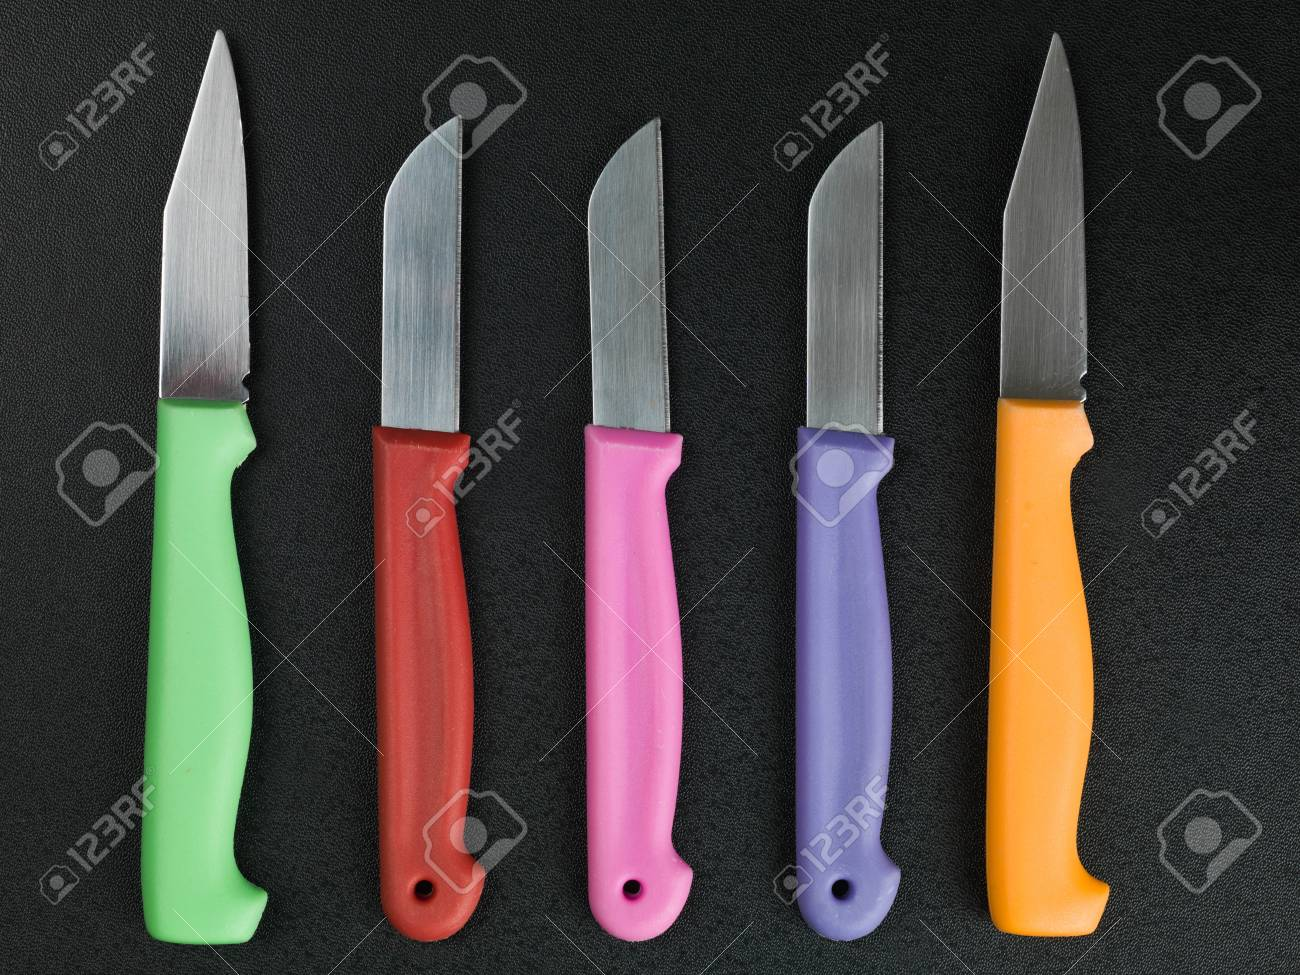 Set of Colorful Kitchen Knives Against a Black Background